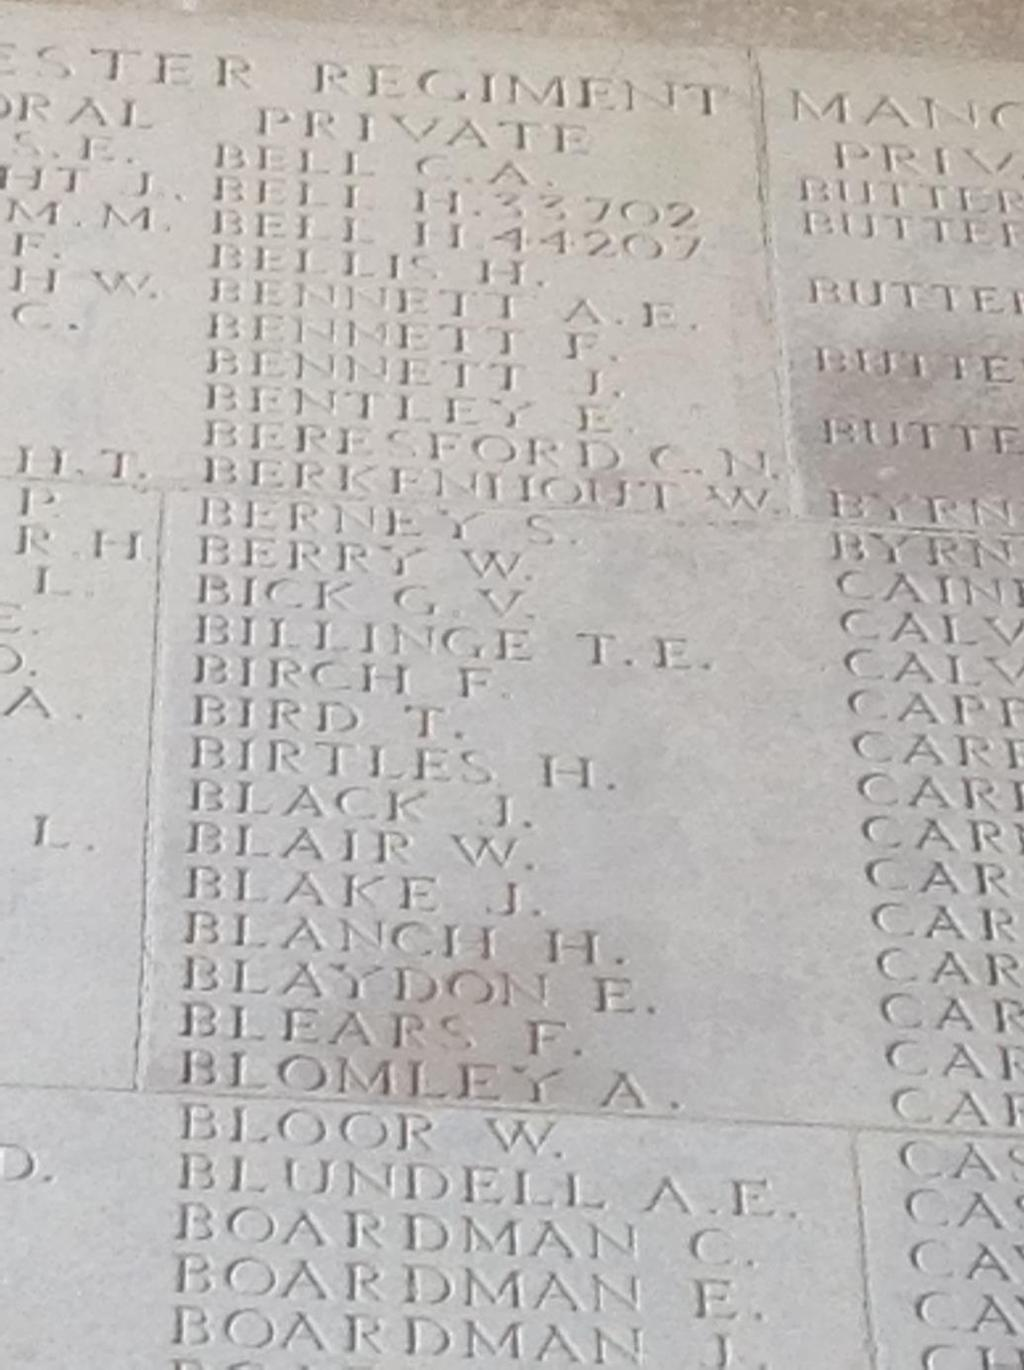 22 P a g e It was eventually established that 41 men of the Battalion were killed that day, including Edward.